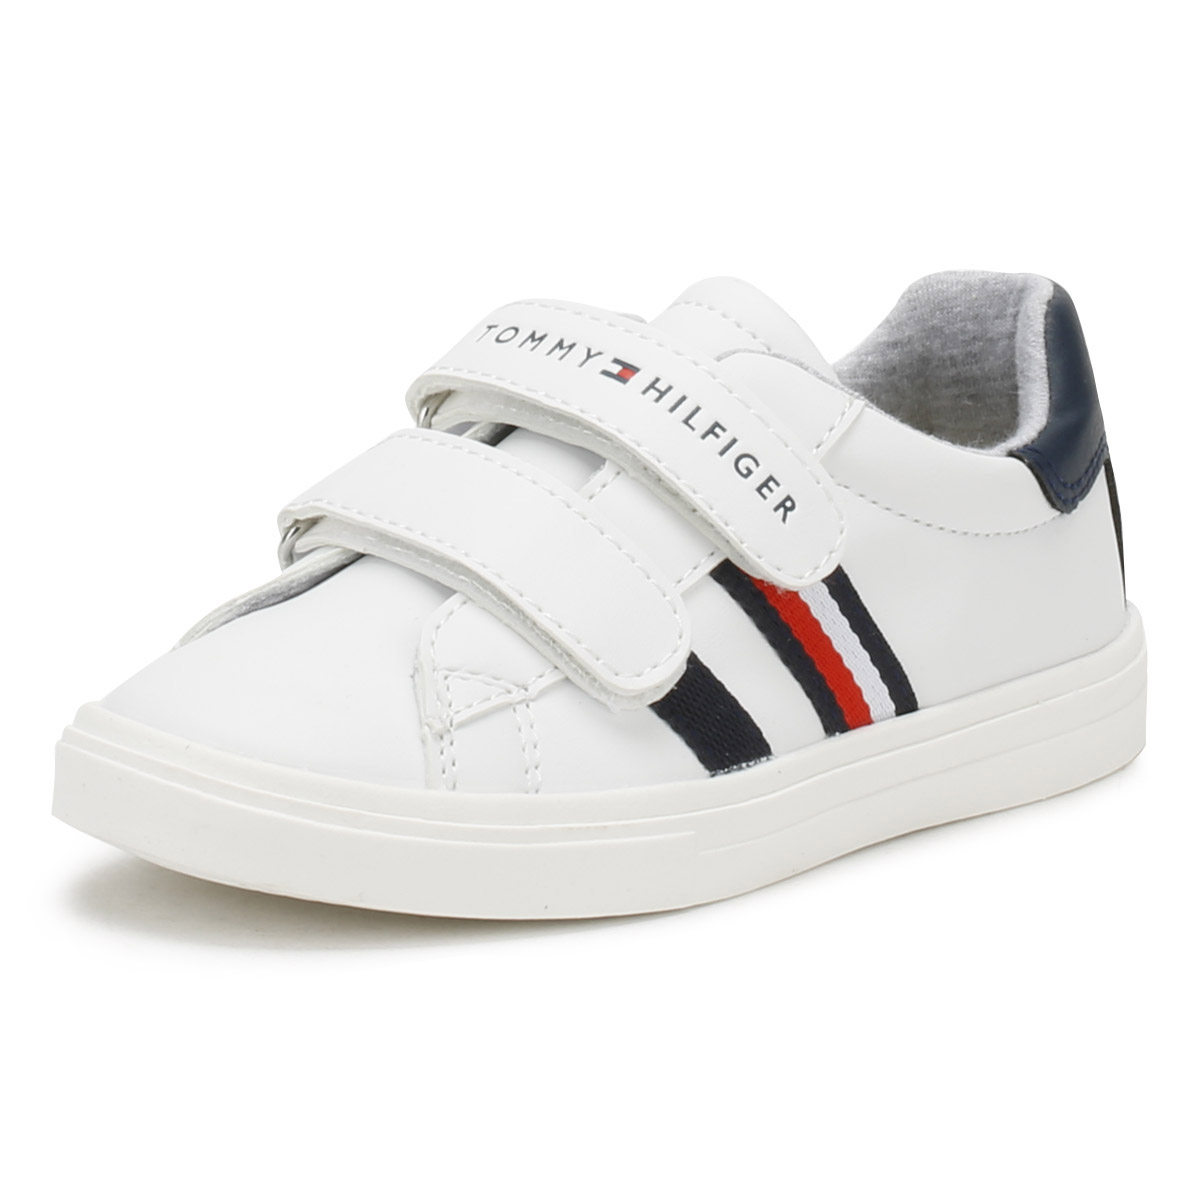 dadc6713c69468 Tommy Hilfiger Toddlers White T1X4 V Trainers Hook & Loop Kids Casual Shoes